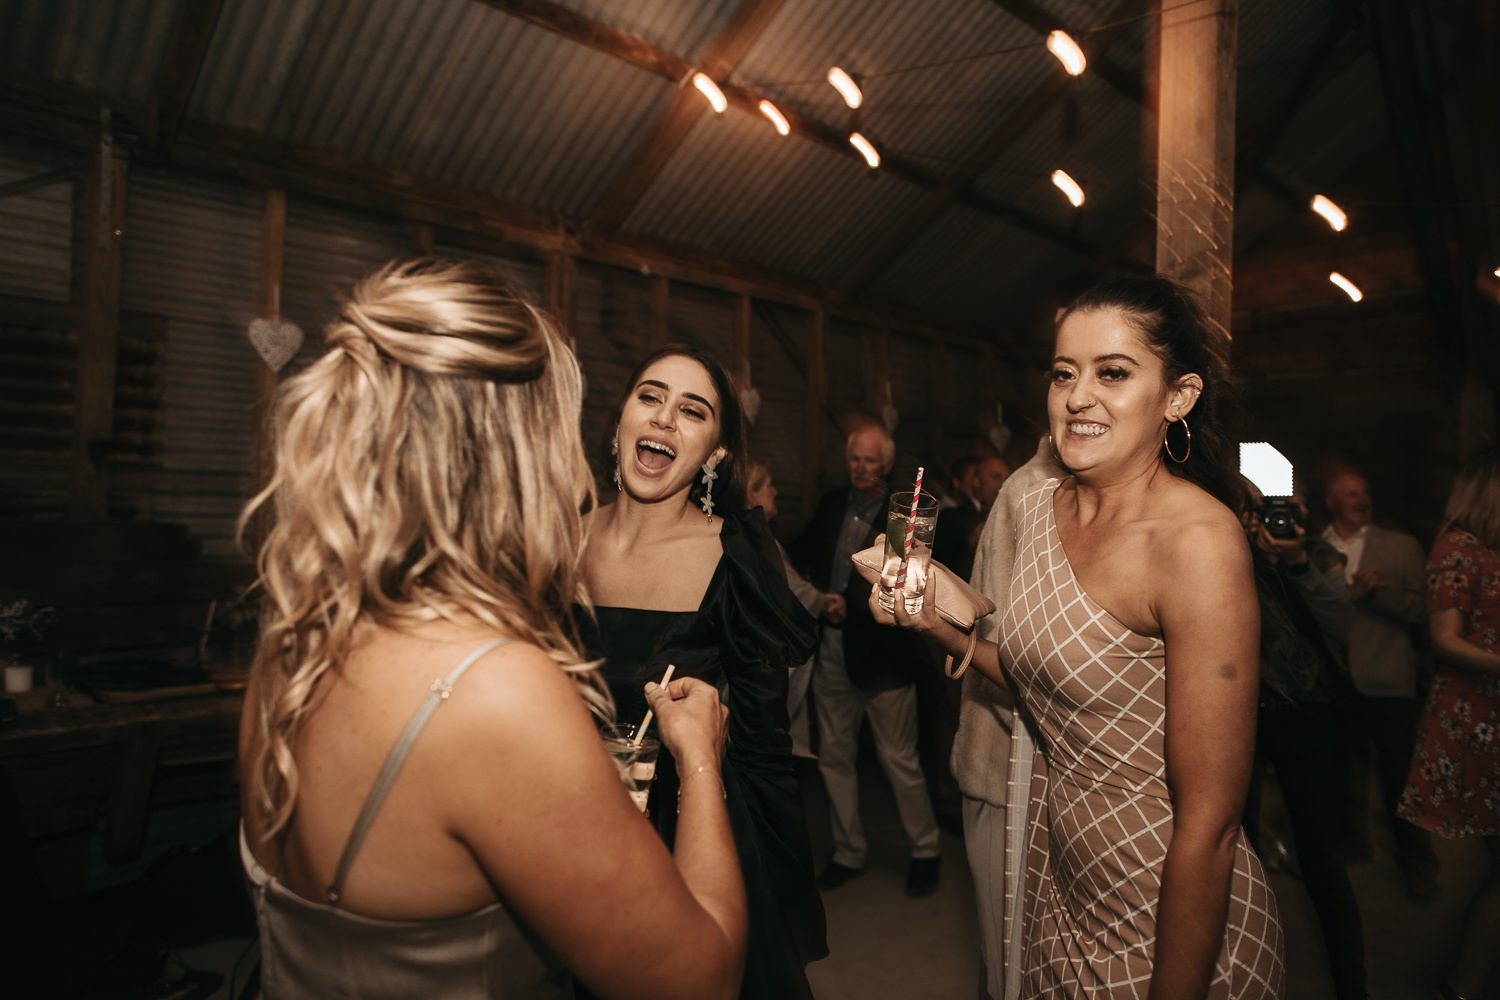 private-property-wedding-relaxed-melbourne-fun-documentary-photography_0167.jpg